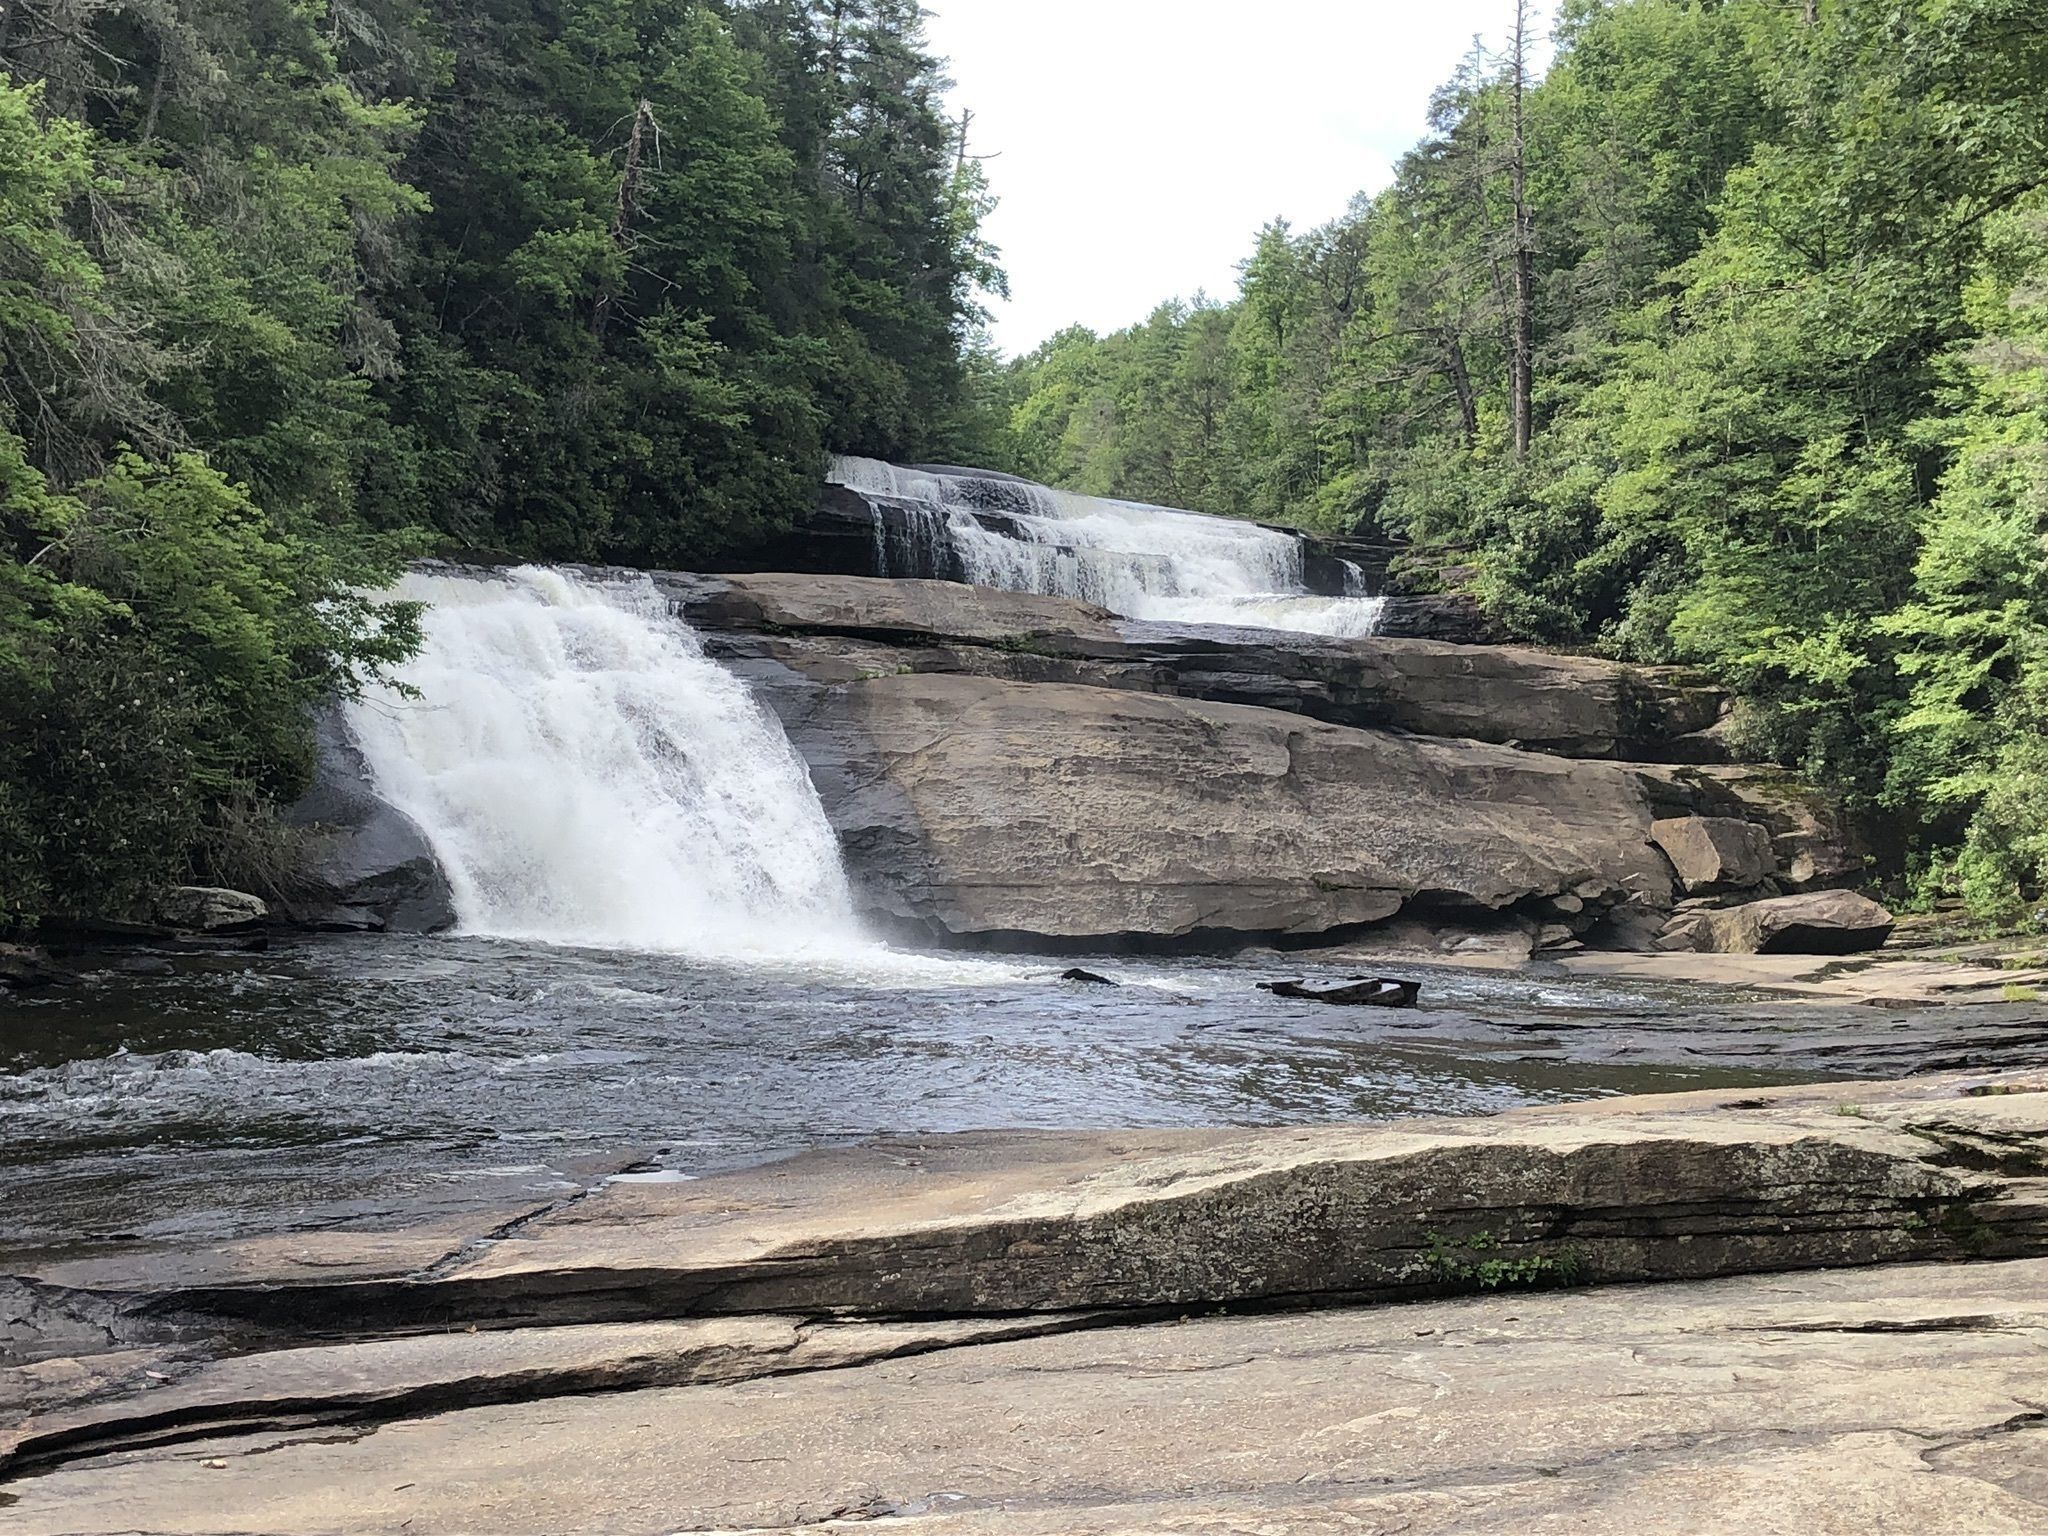 Triple Falls Trail - North Carolina | AllTrails on map of nc arboretum, map of pisgah national forest, map of mount mitchell, map of dupont state forest, map of transylvania county, map of blue ridge parkway, map of chimney rock, map of mount pisgah, map wa state park, map of grandfather mountain,